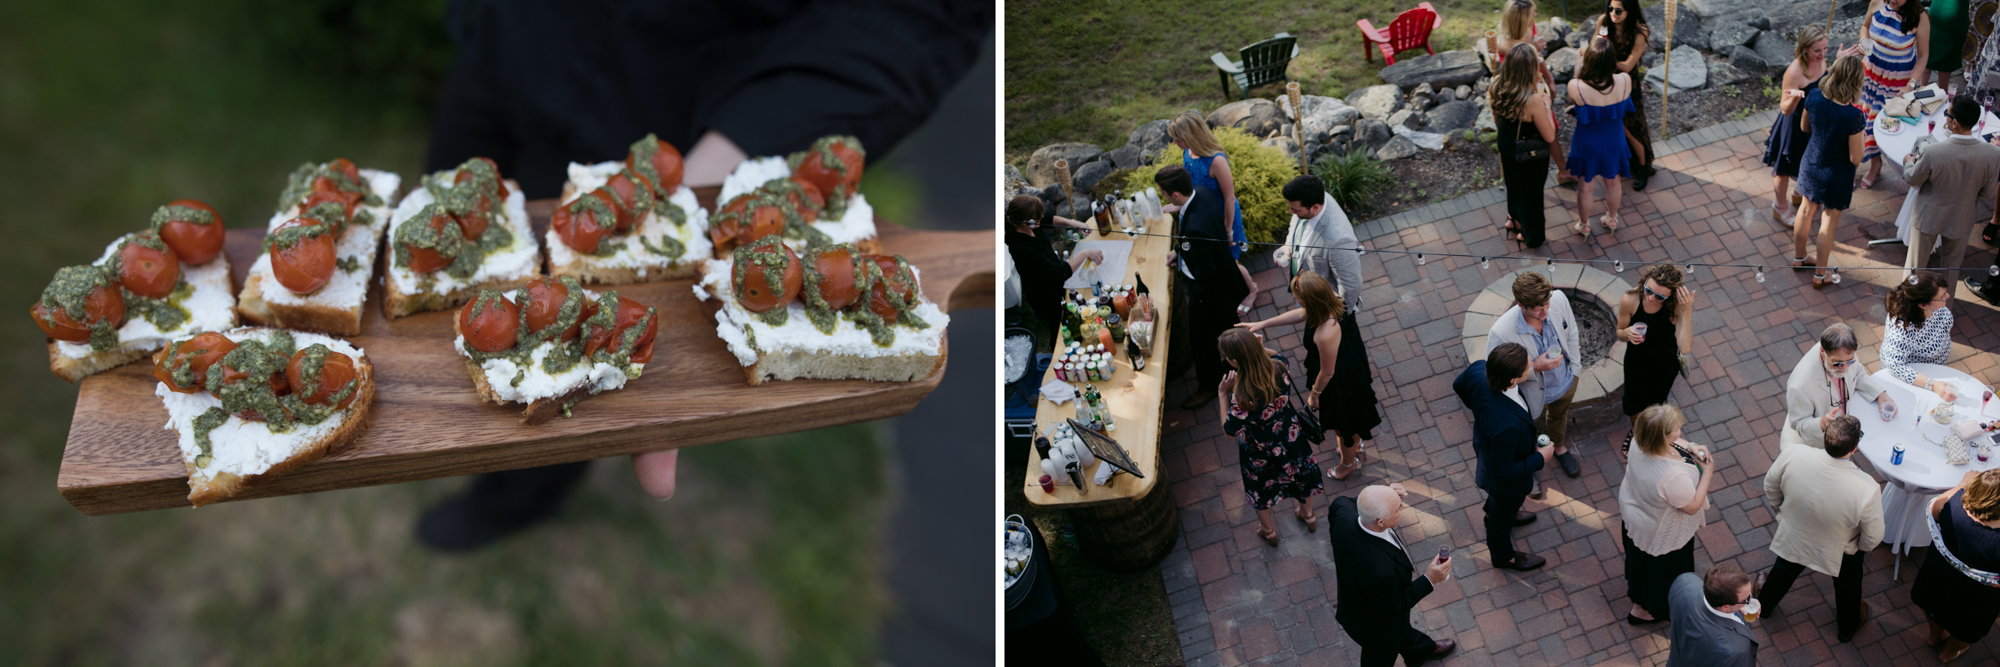 harpswell_maine_wedding_on_a_private_oceanfront_barn_leah_fisher_017.jpg